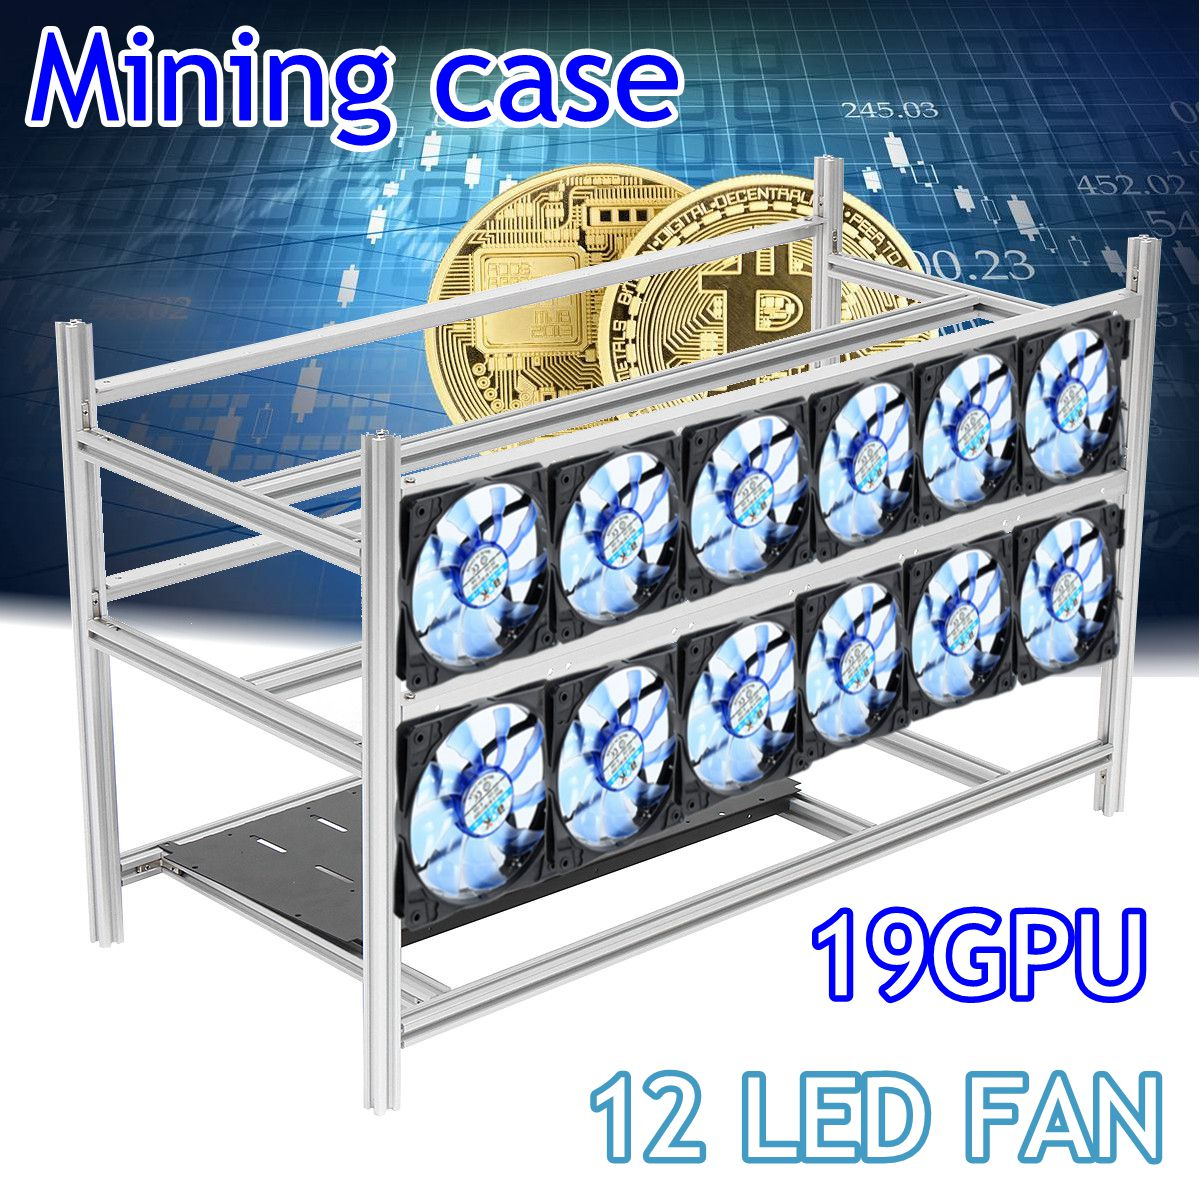 Stackable Open Air Mining Rig Frame Miner Case For 19 GPU ETC BTH 3 Power Supply New Computer Mining Case Frame Server Chassis